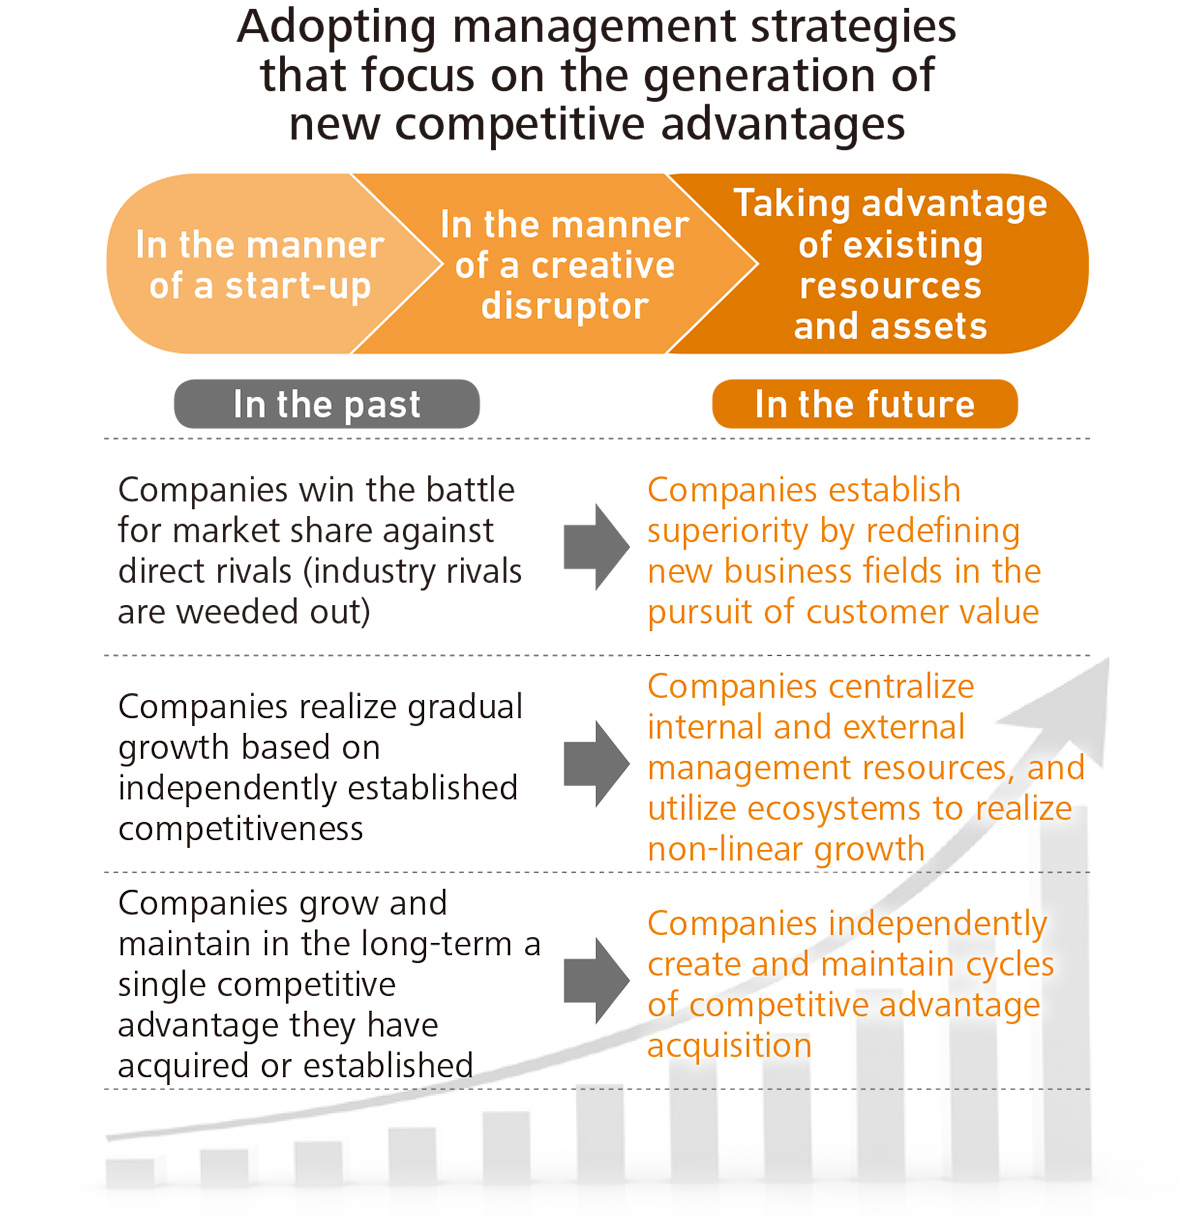 Adopting management strategies that focus on the generation of new competitive advantages